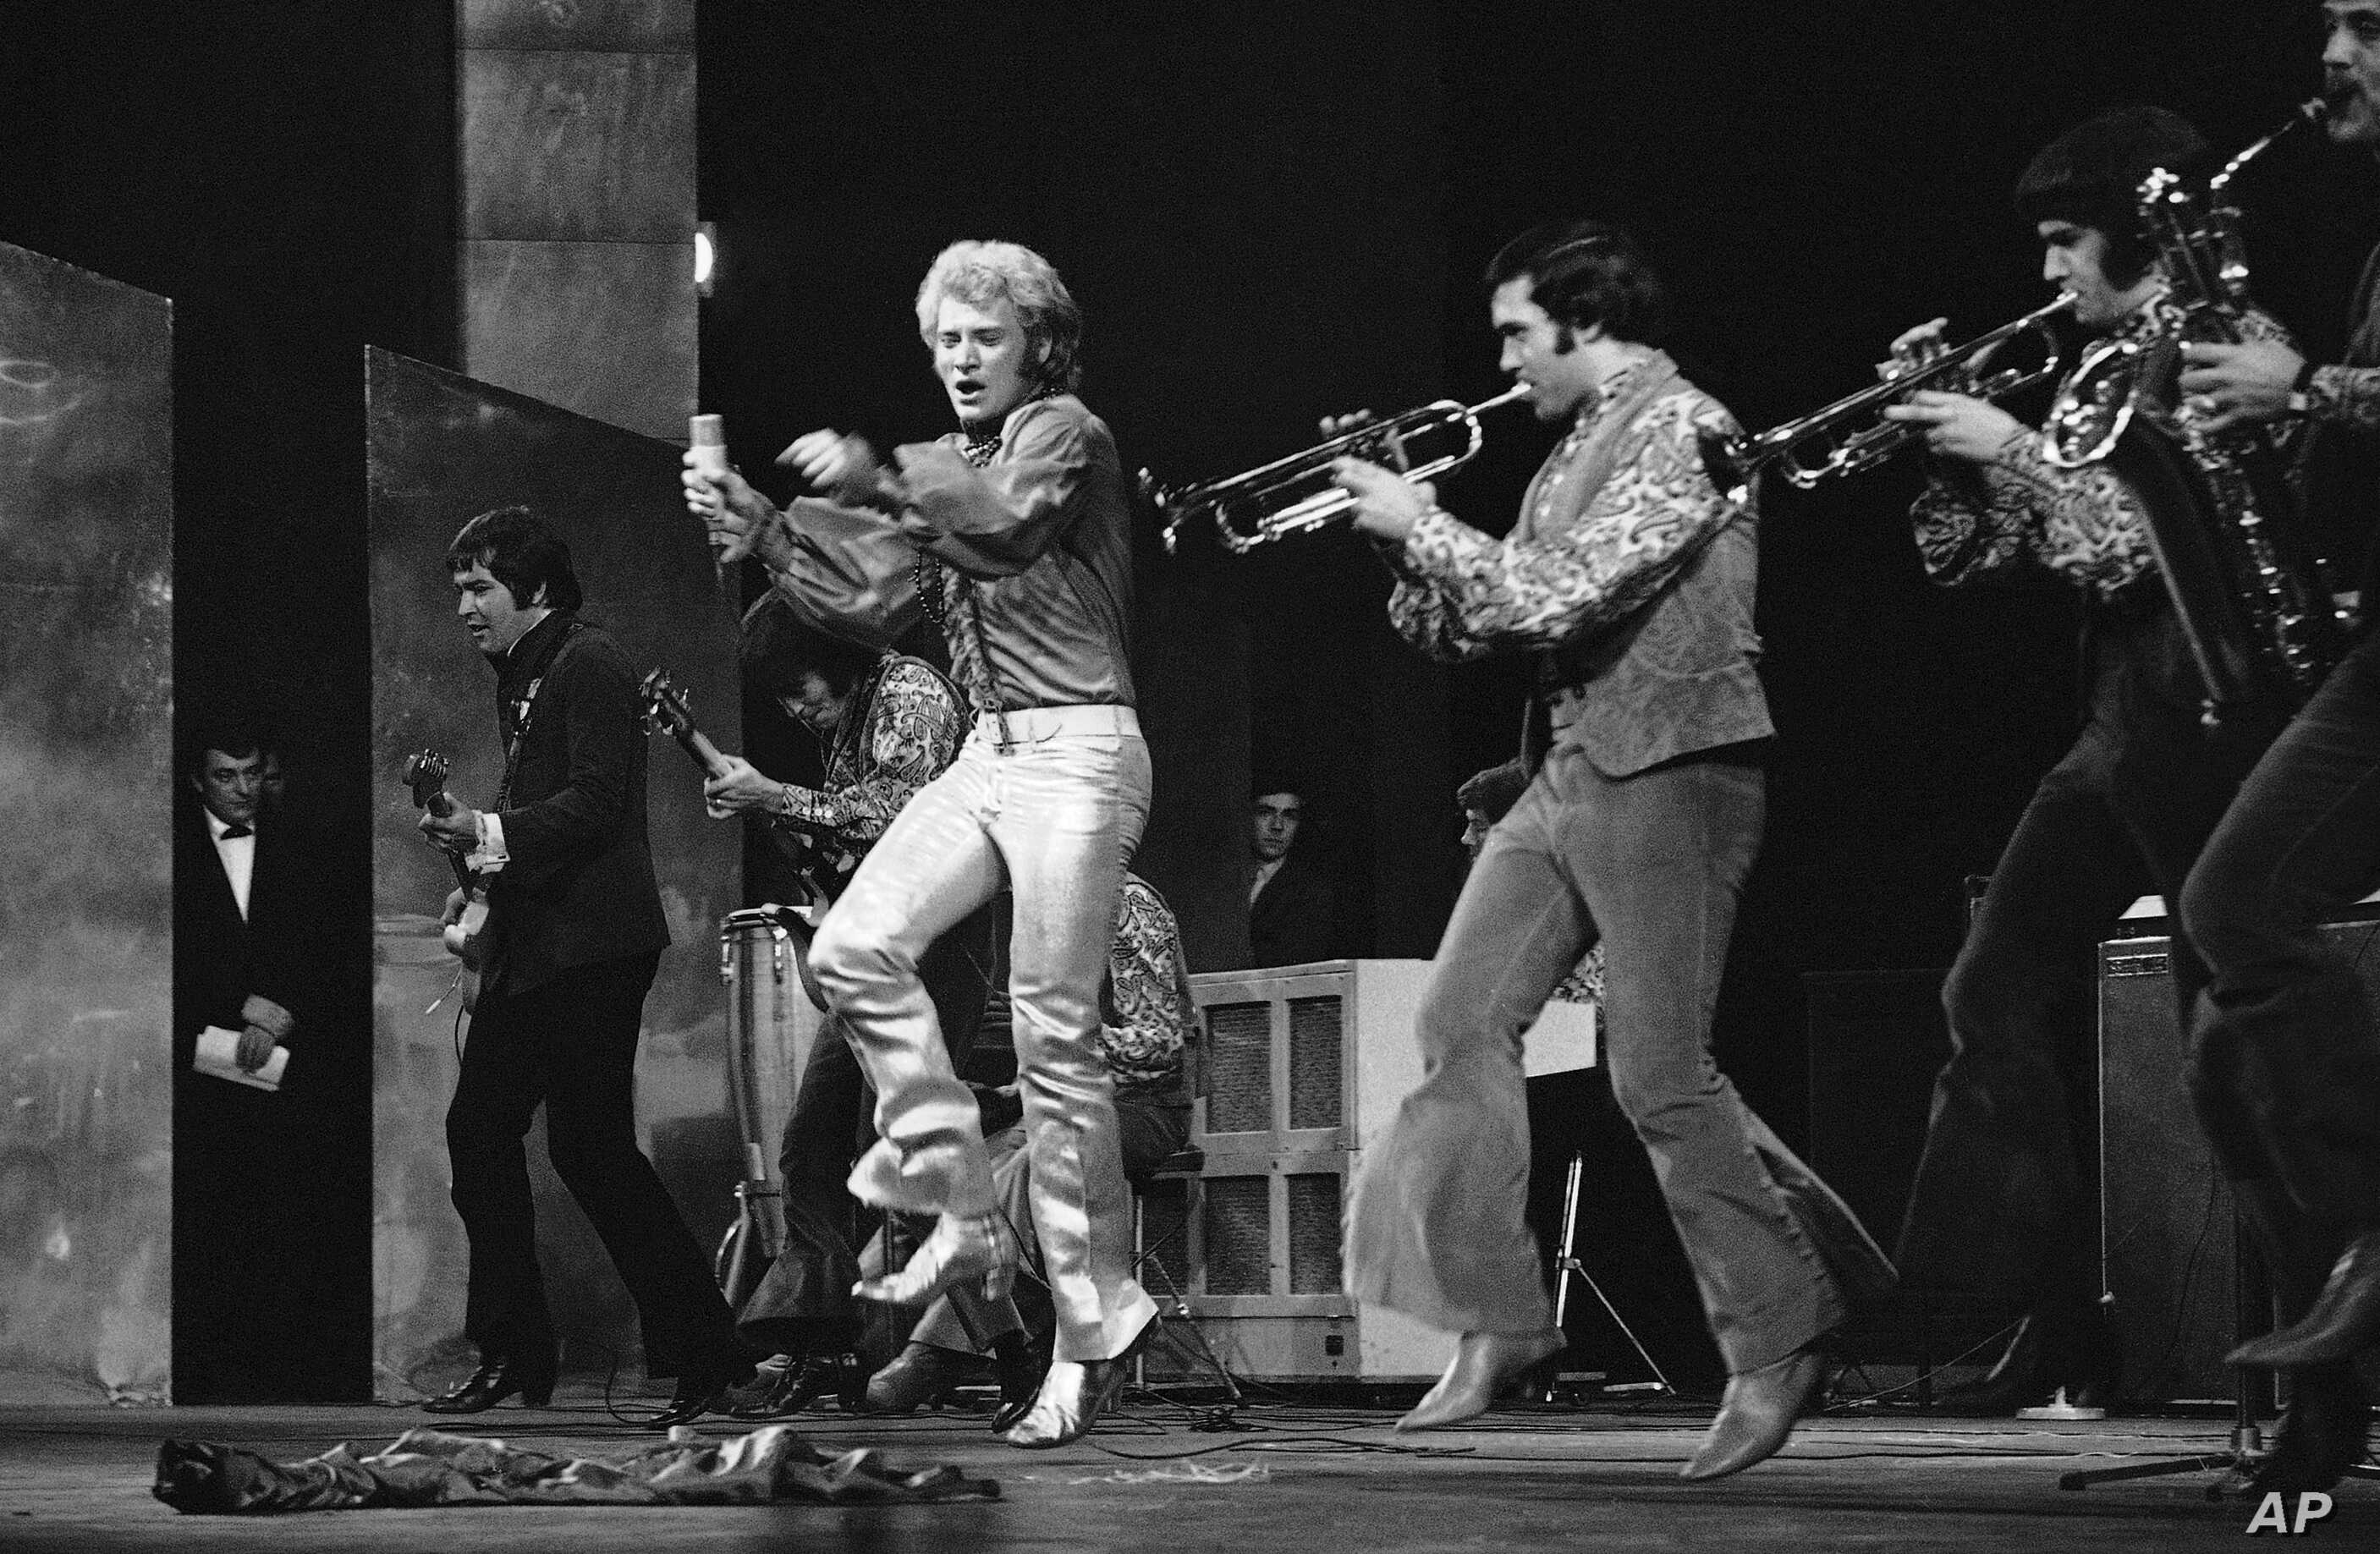 FILE - In this Dec. 16 1967 French rock singer Johnny Hallyday performs at the Palais de Chaillot in Paris.